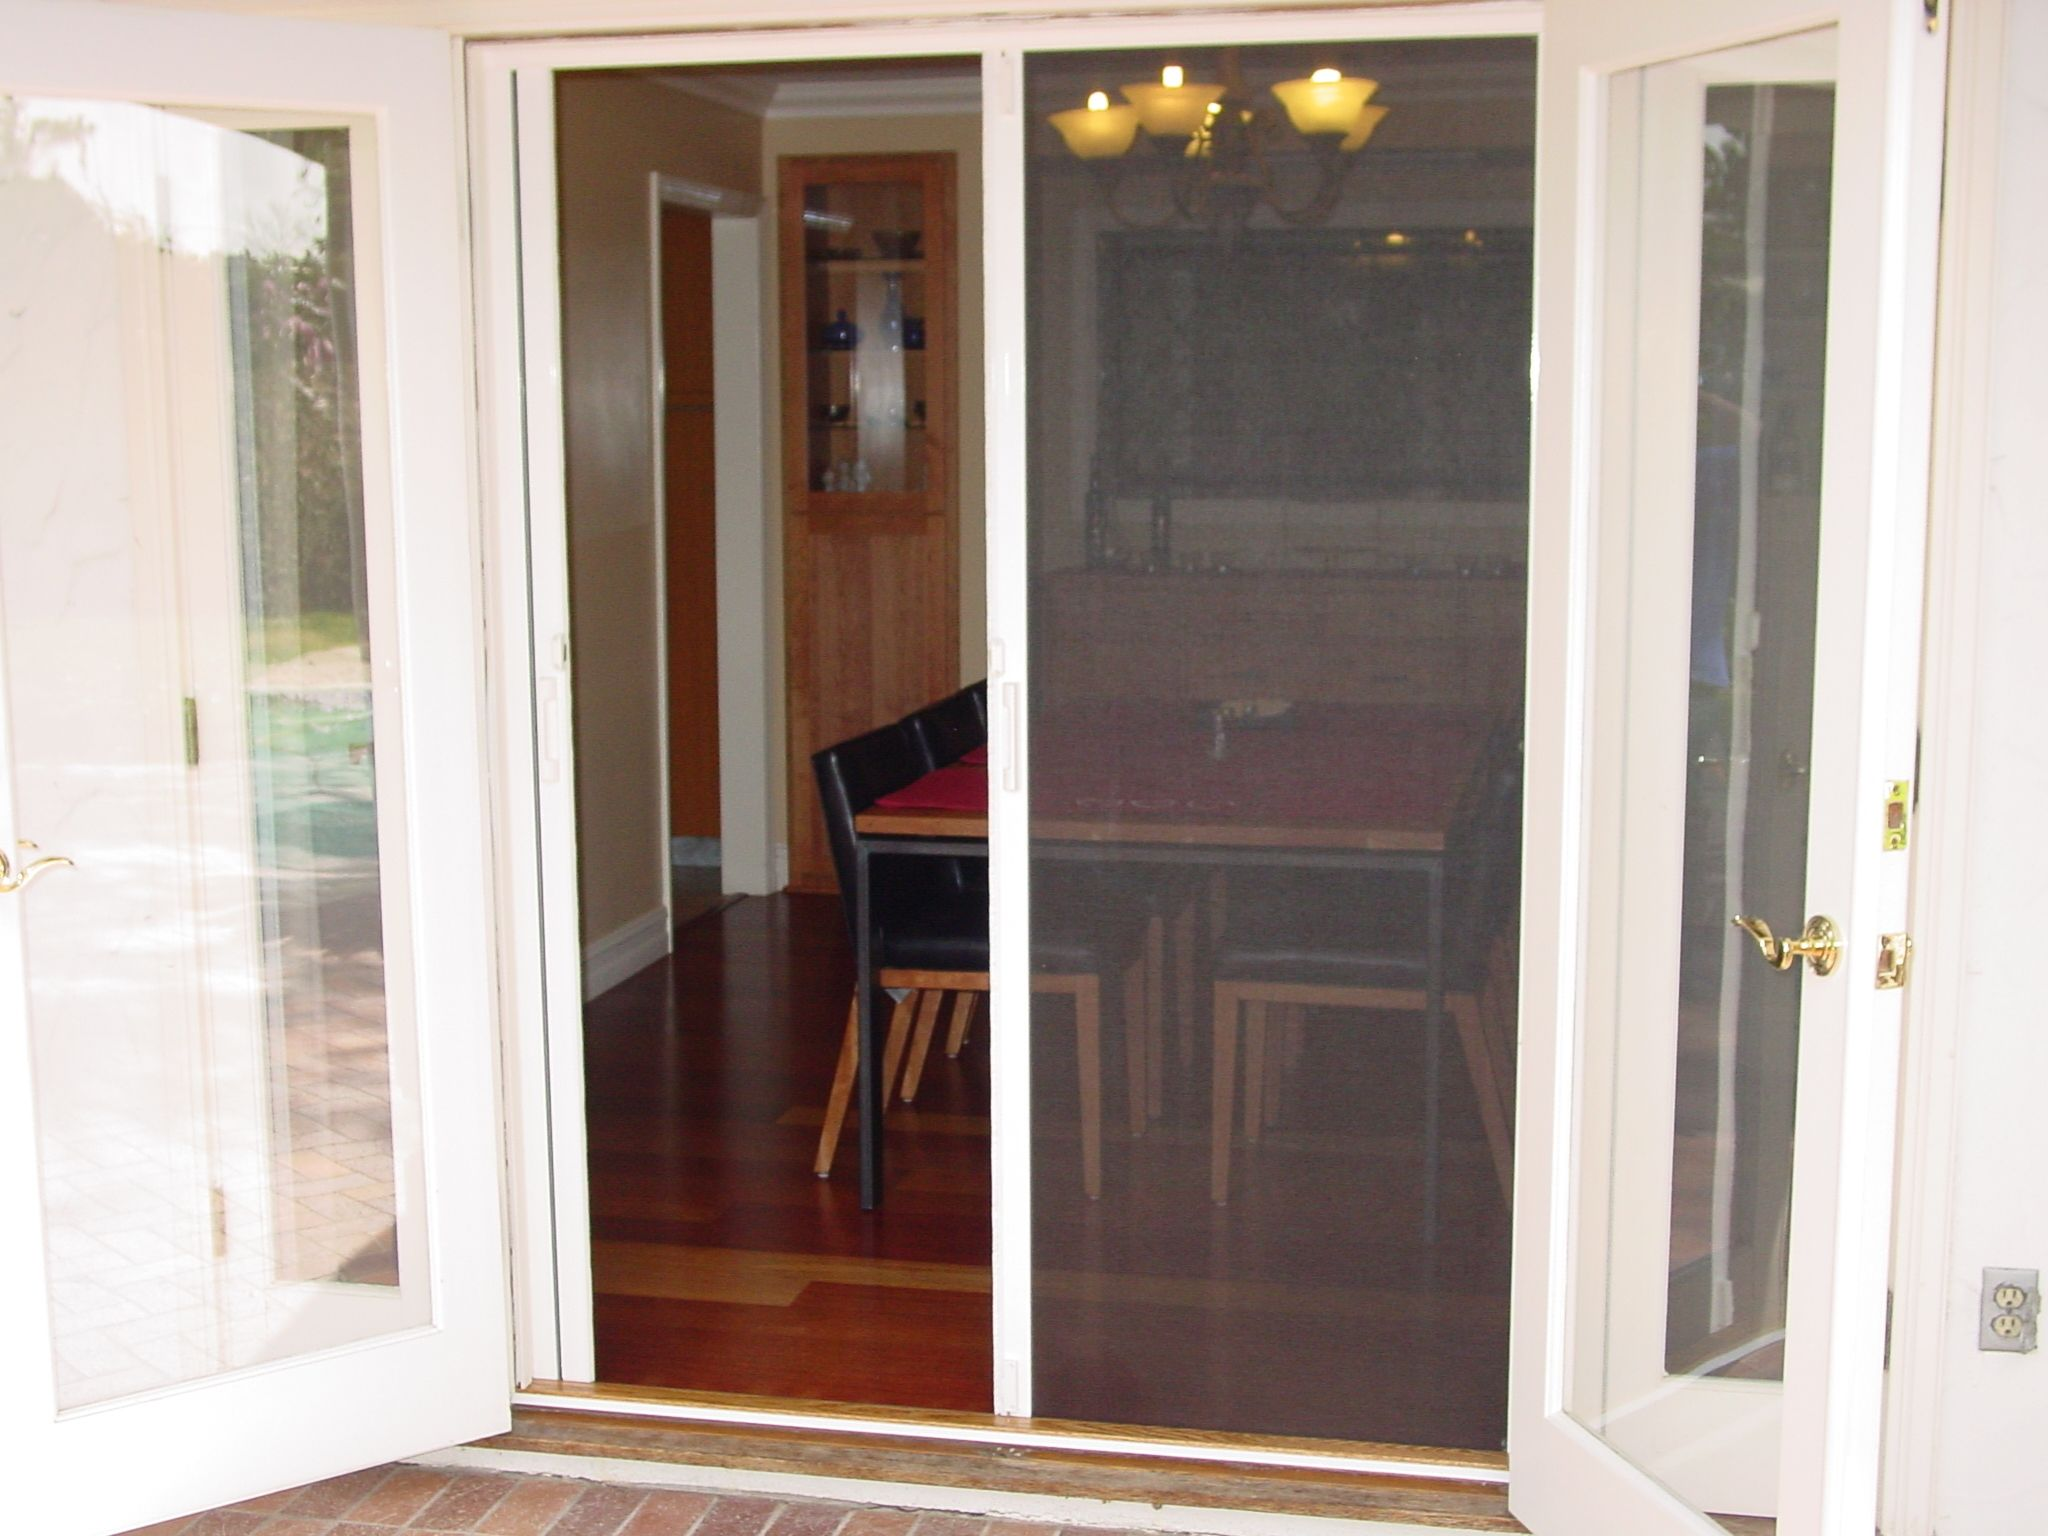 Door Sizes Home Depot | Home Depot French Doors Exterior Outswing | French Doors Home Depot